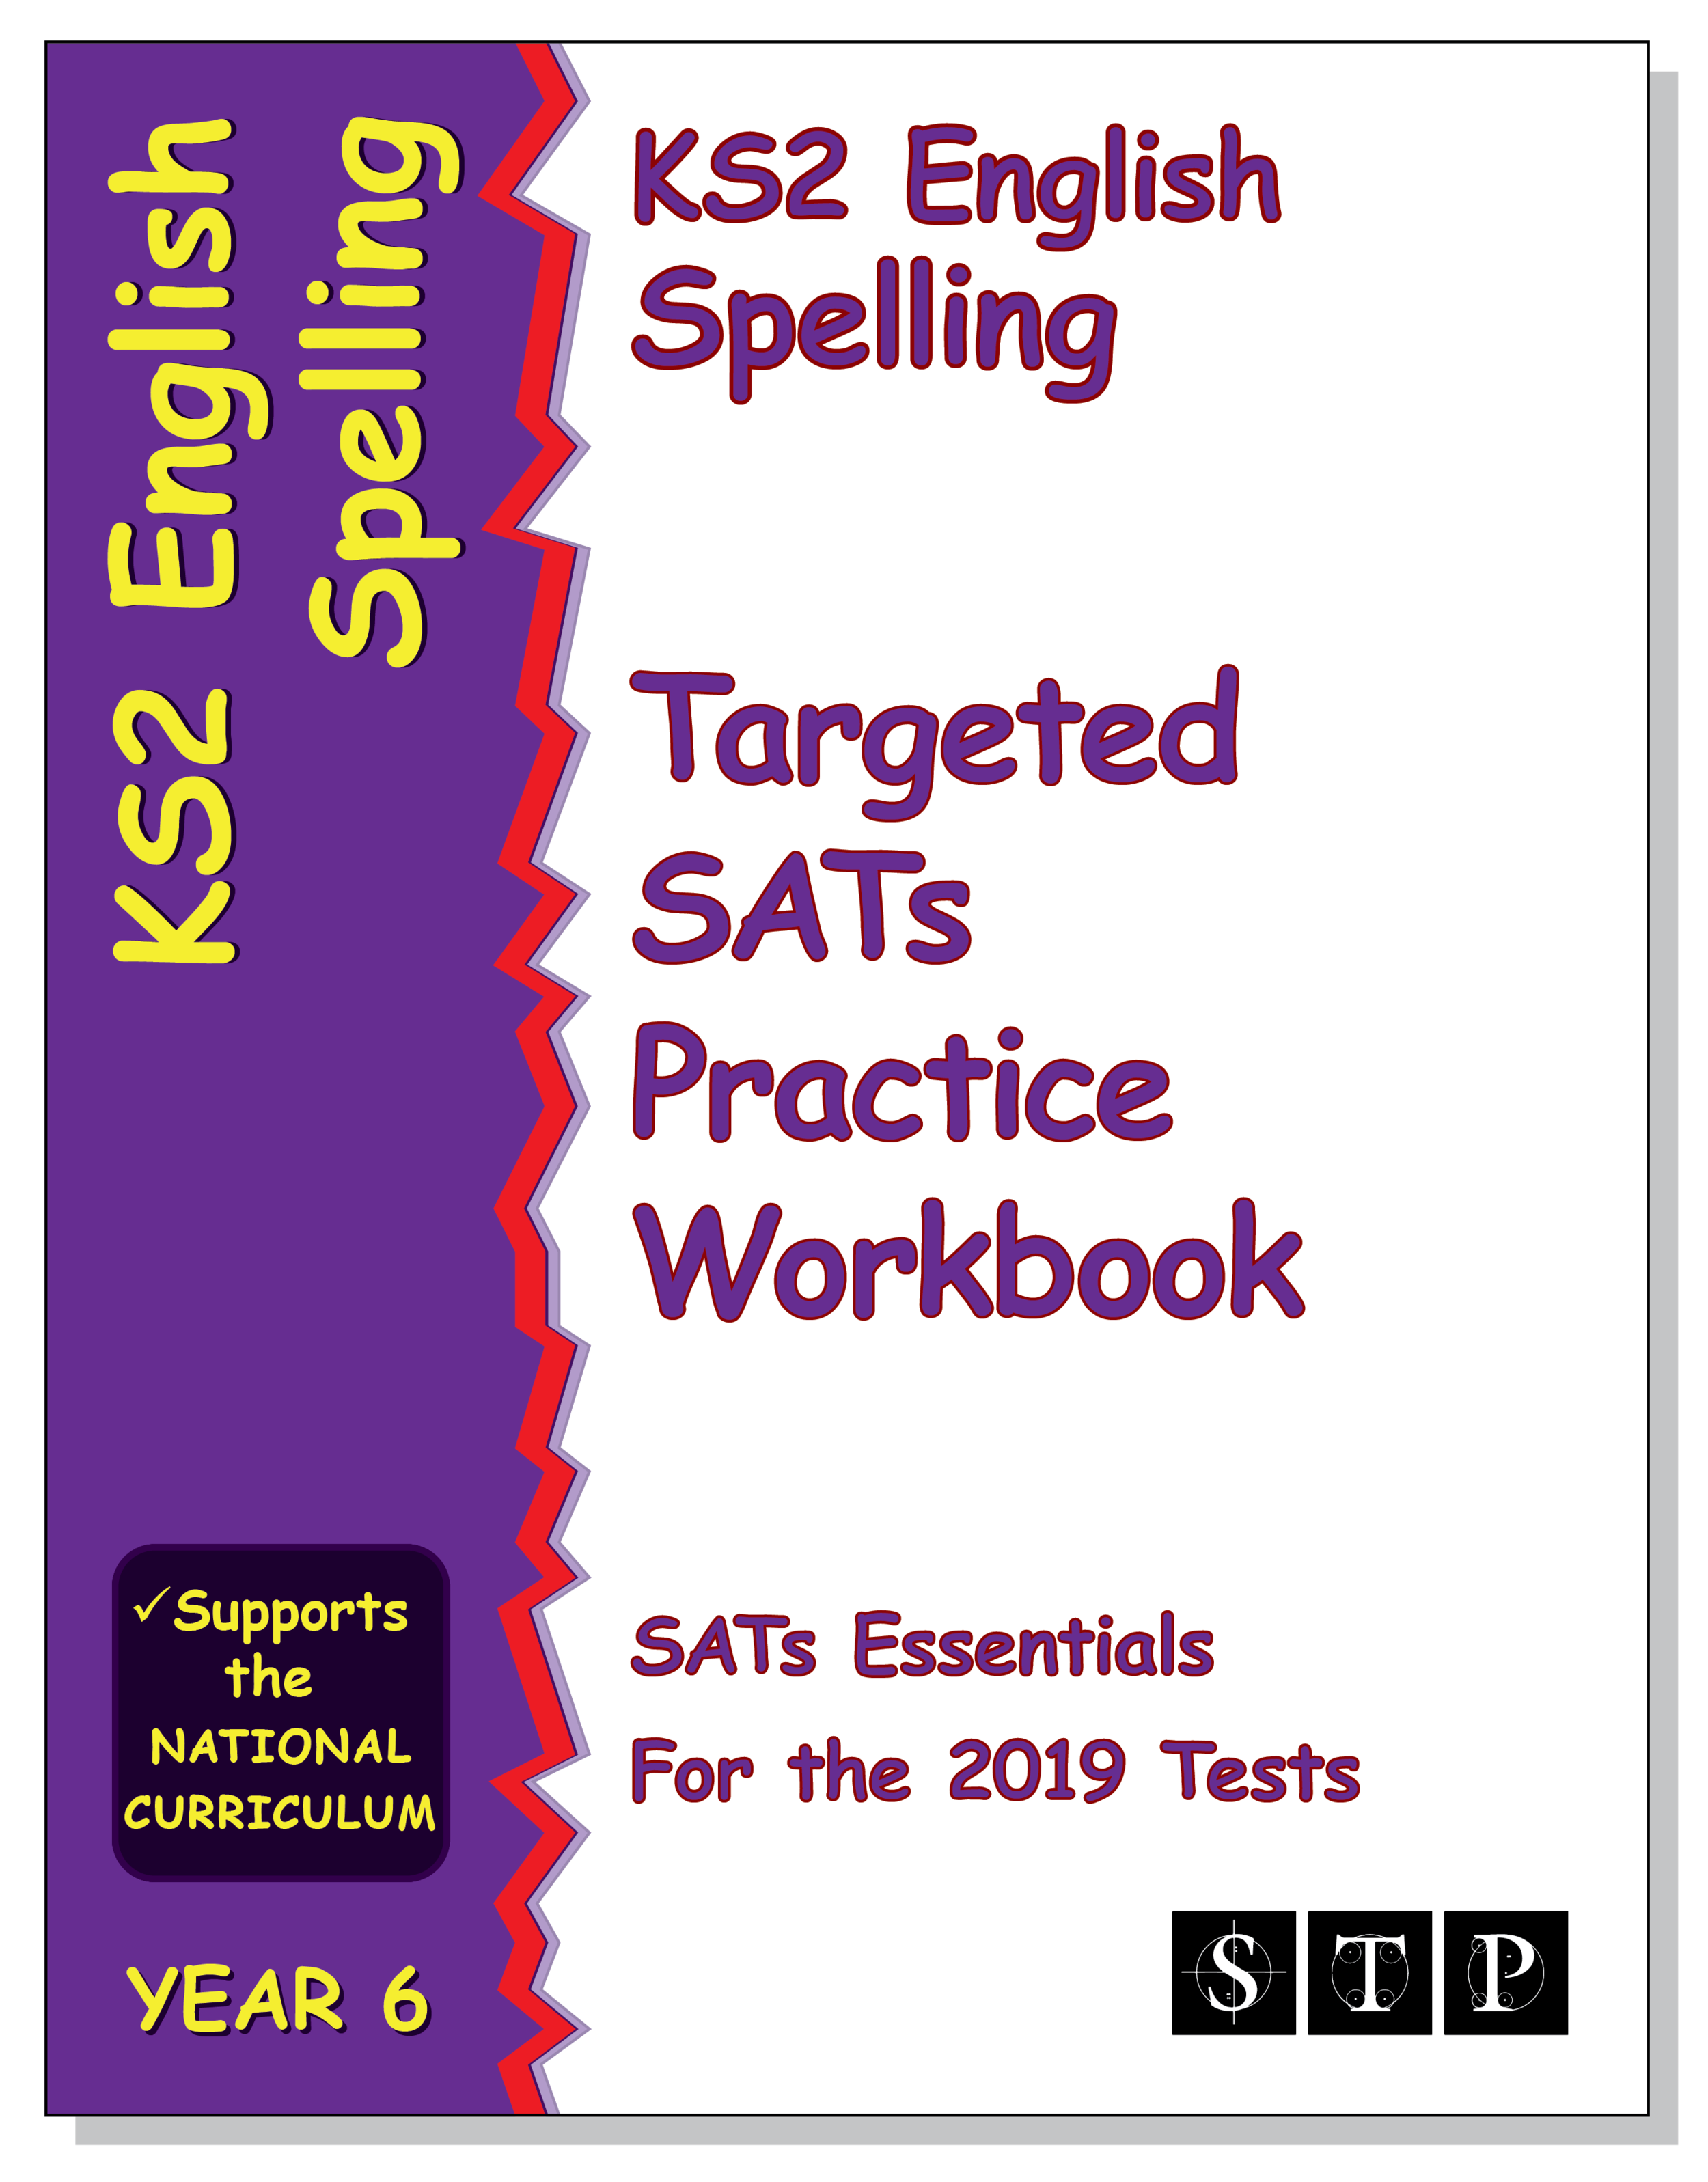 STP Books KS2 English Spelling Targeted SATs Practice Workbook for the 2019 Tests (Year 6) (STP KS2 English SATs Essentials)